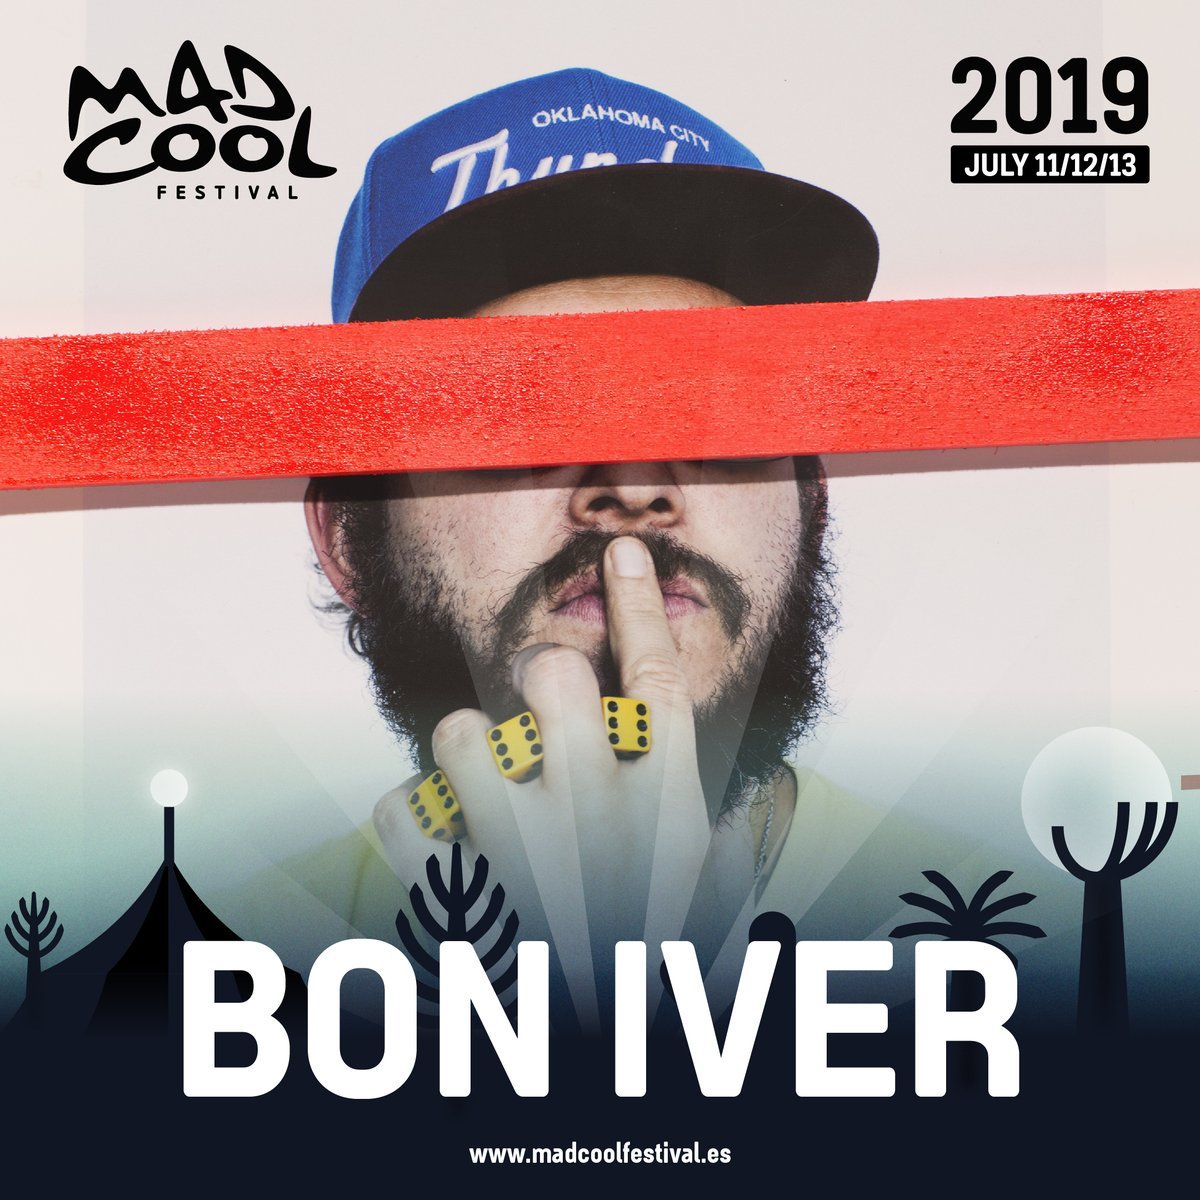 bon iver mad cool 2019